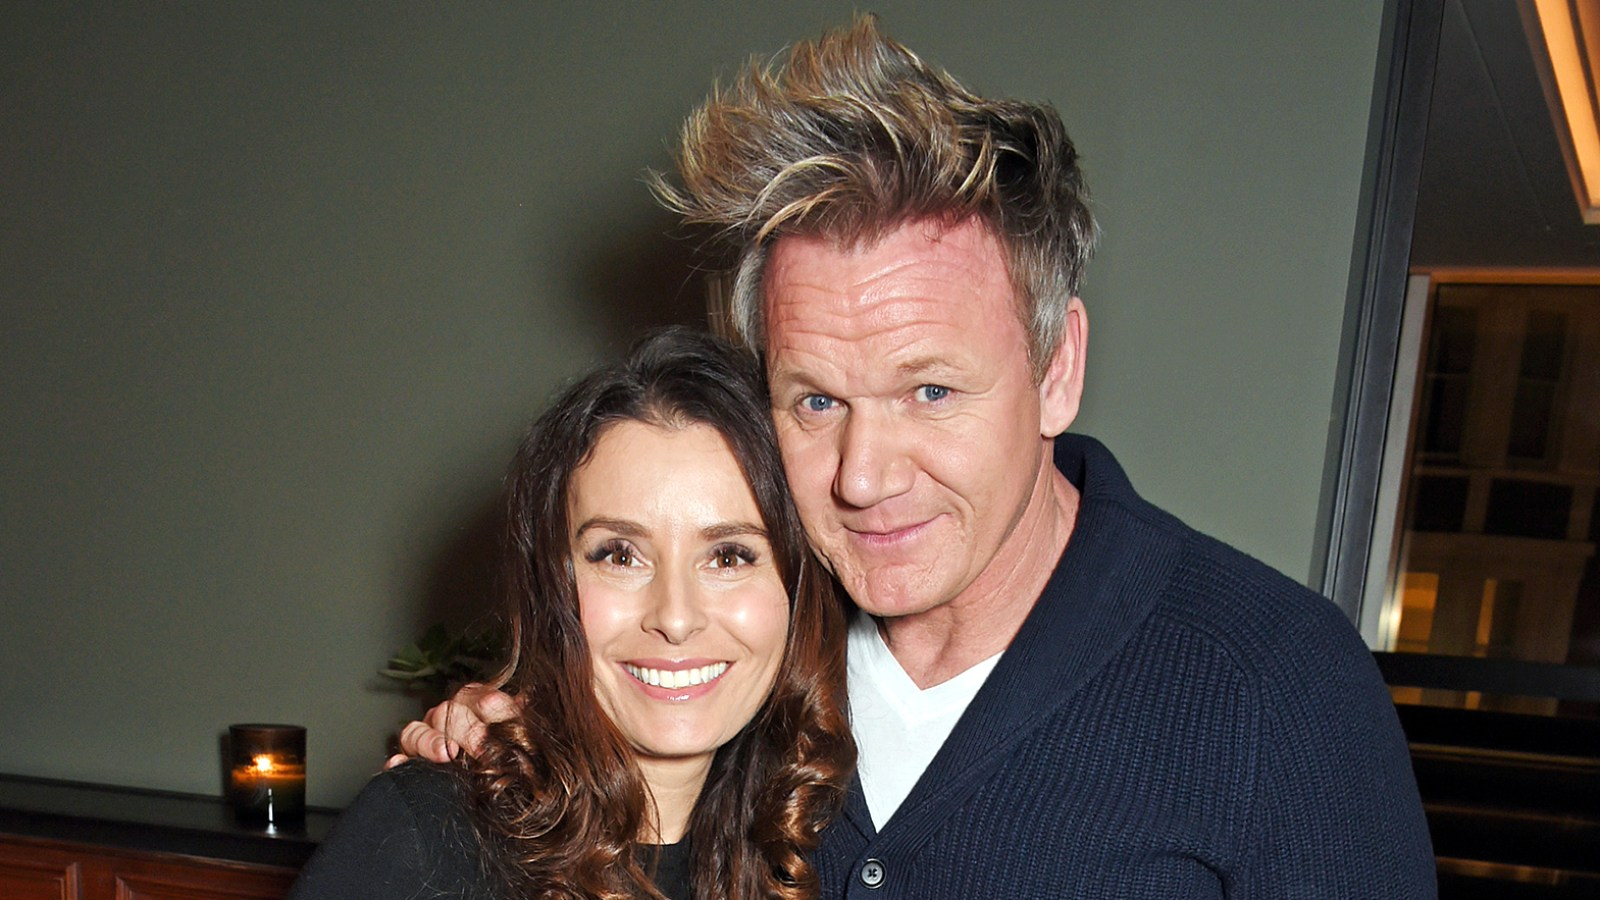 Gordon ramsay lost 50 pounds to save his marriage to wife tana m4hsunfo